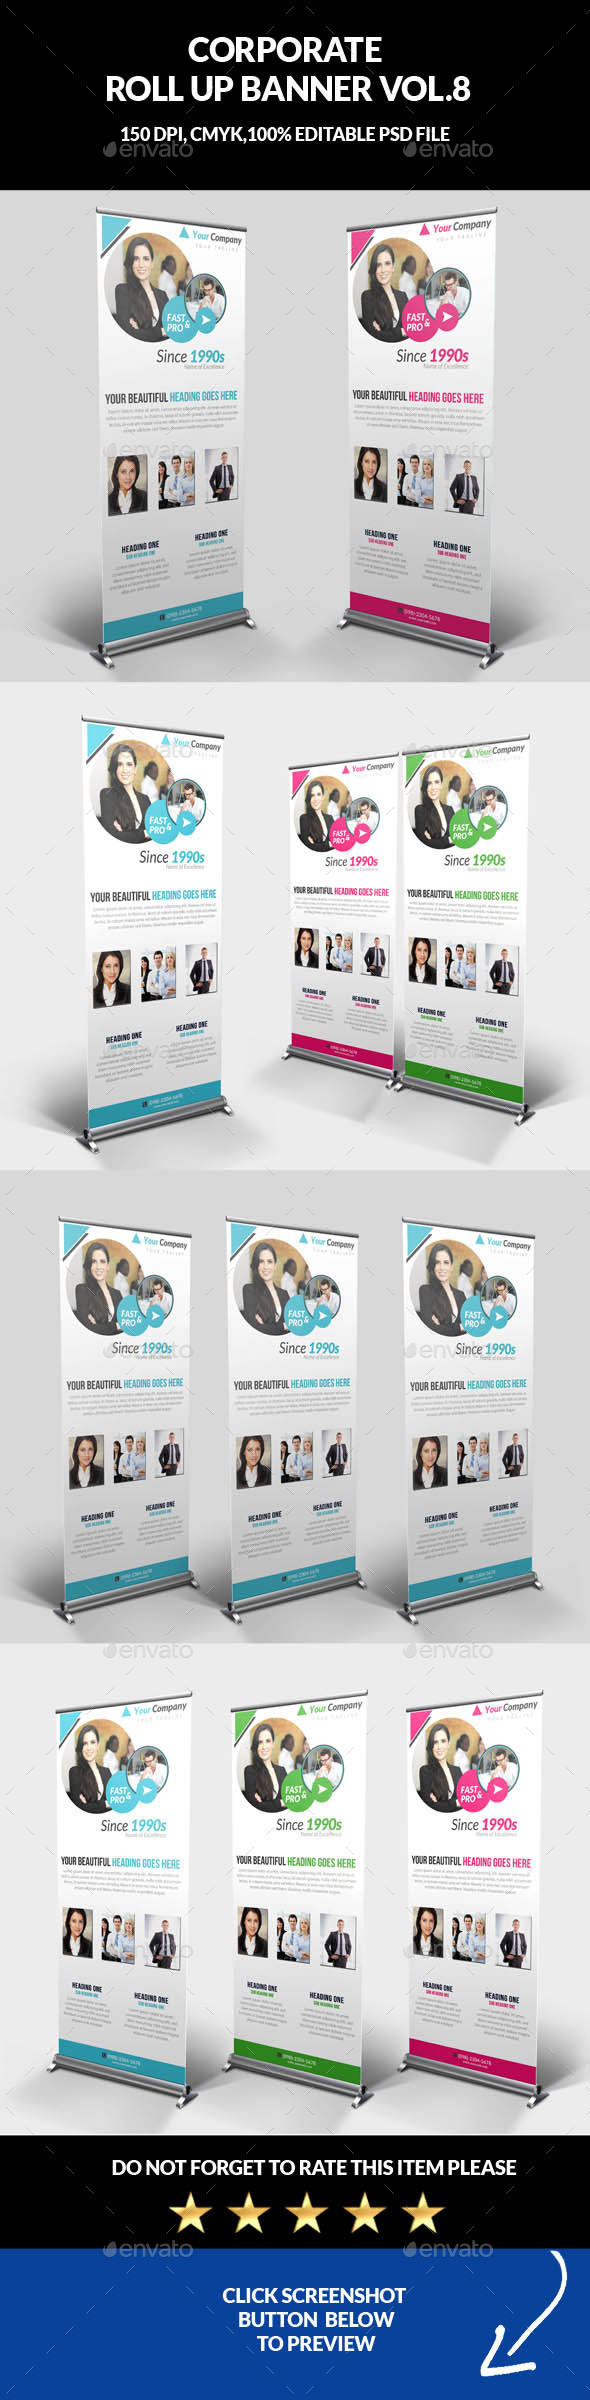 Corporate Business Roll Up Banner Vol.8 - Signage Print Templates